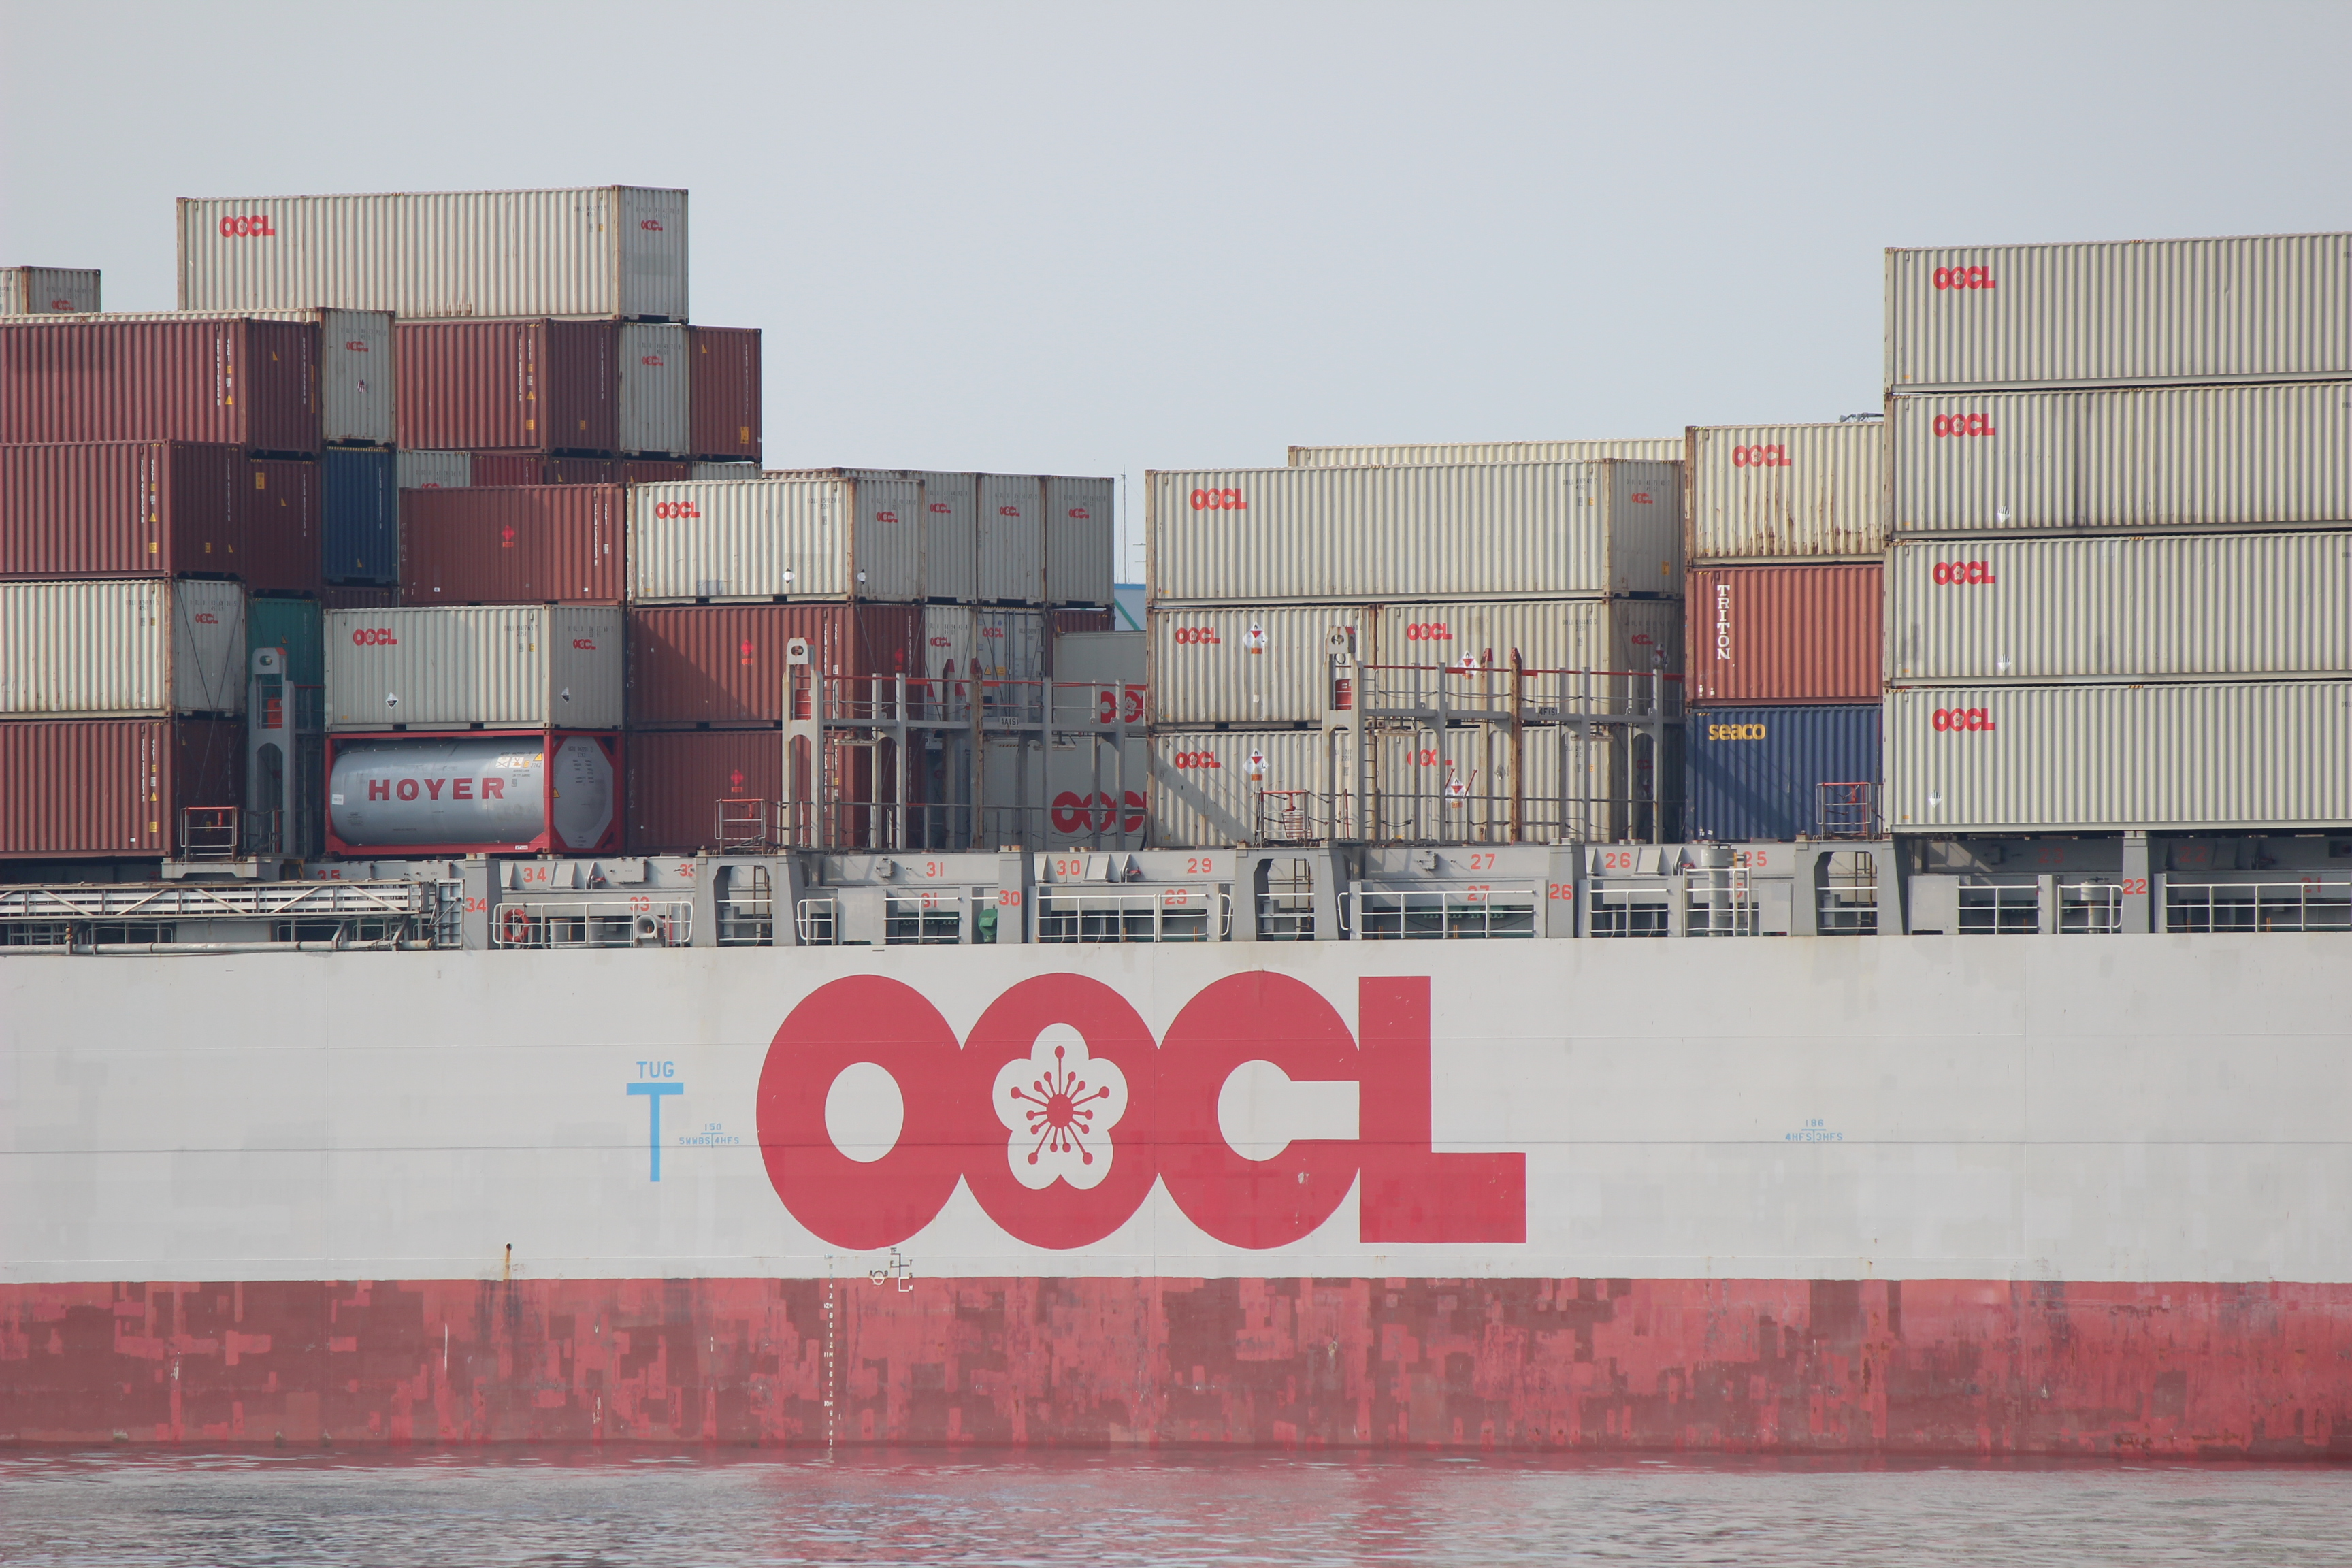 OOCL コンテナ船